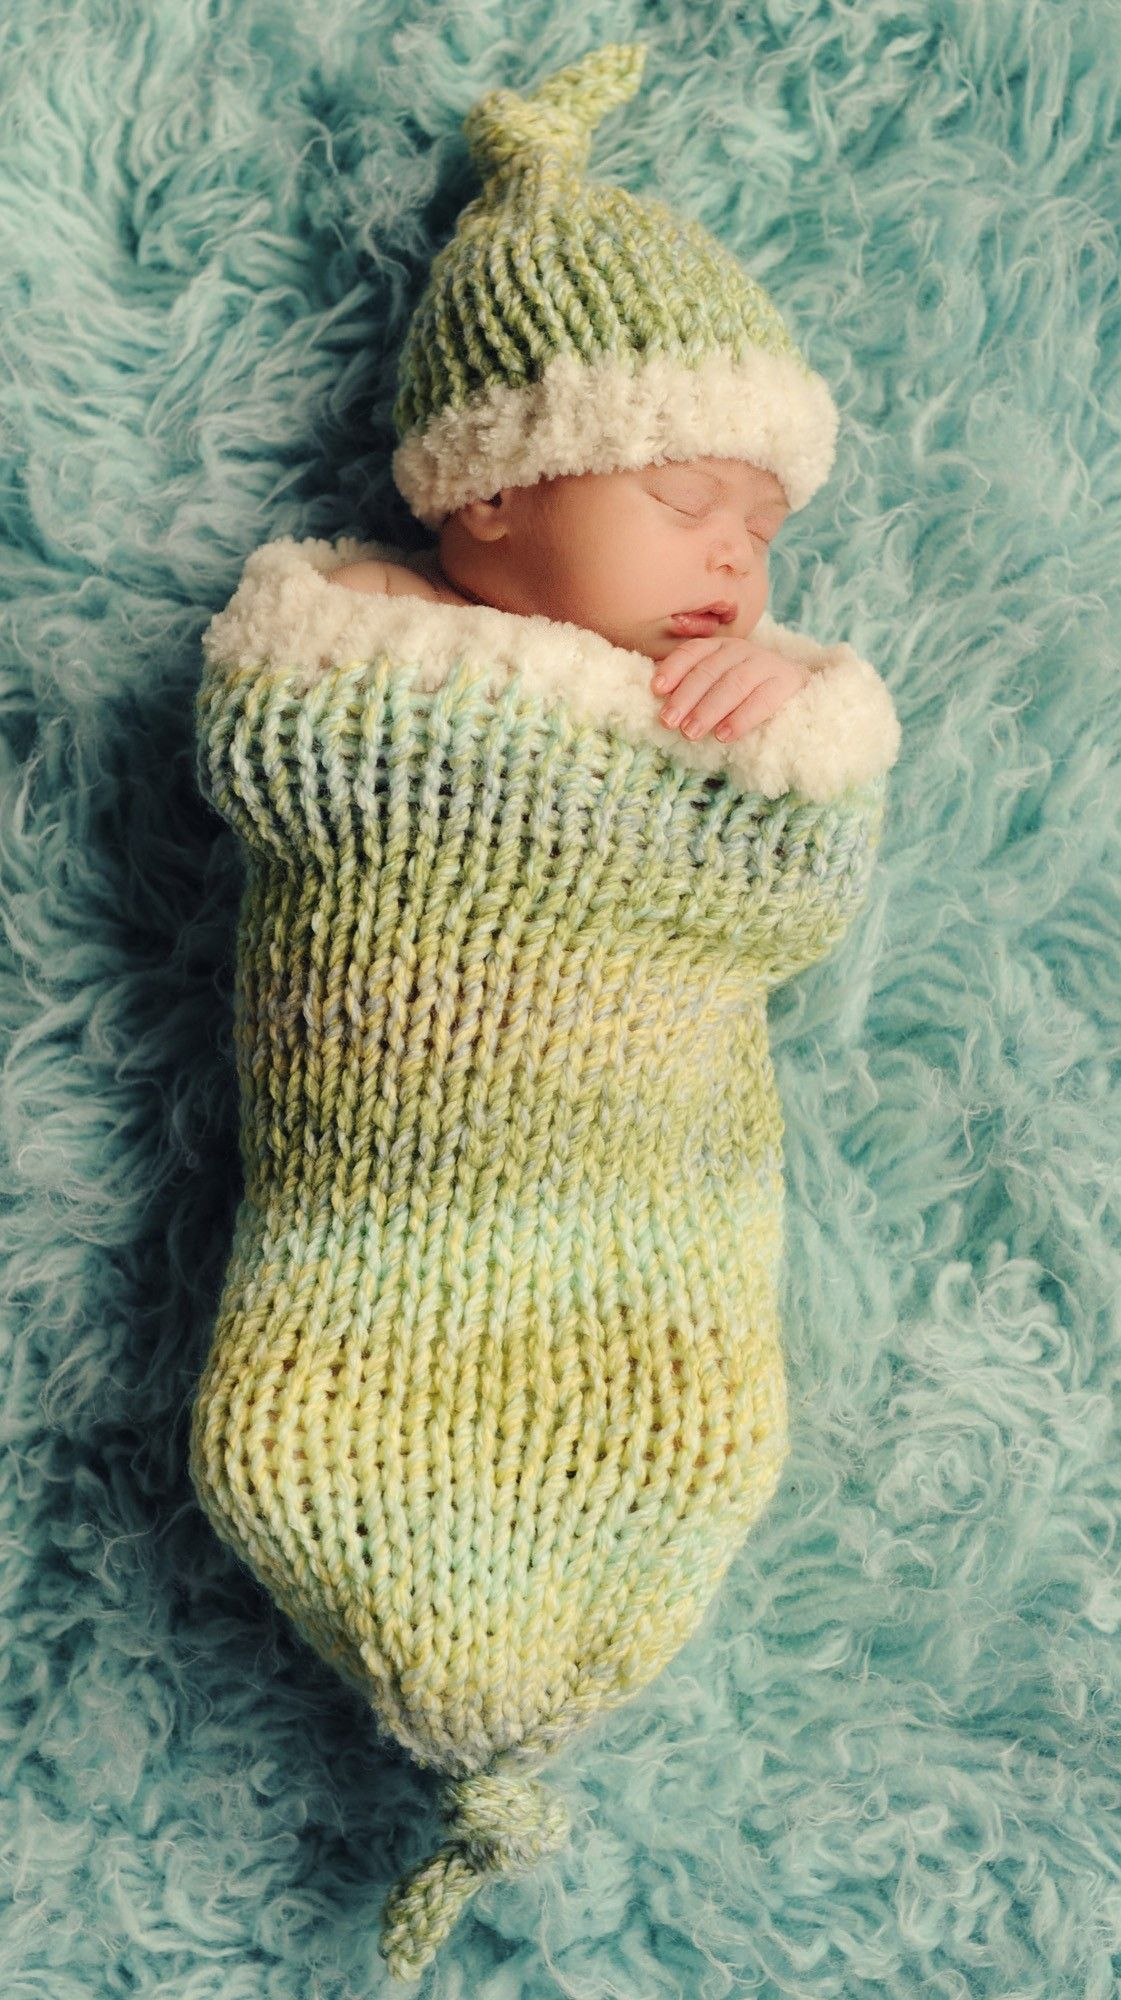 Sweet Dreams Baby Cocoon and Hat Set Pattern (Knit) | DETOX ...